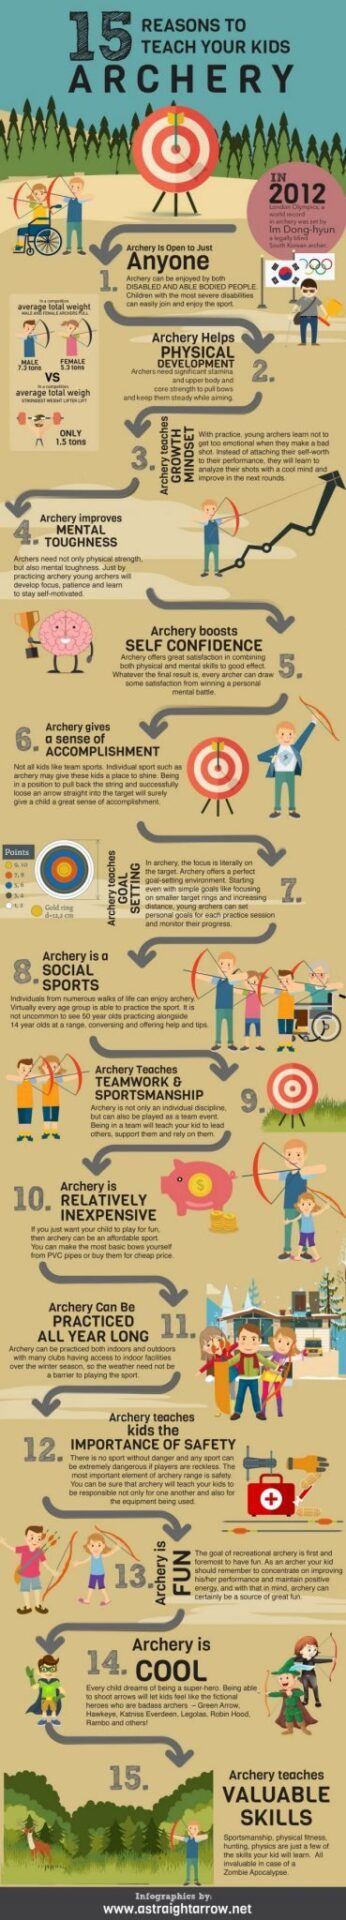 reasons-to-teach-your-kids-archery